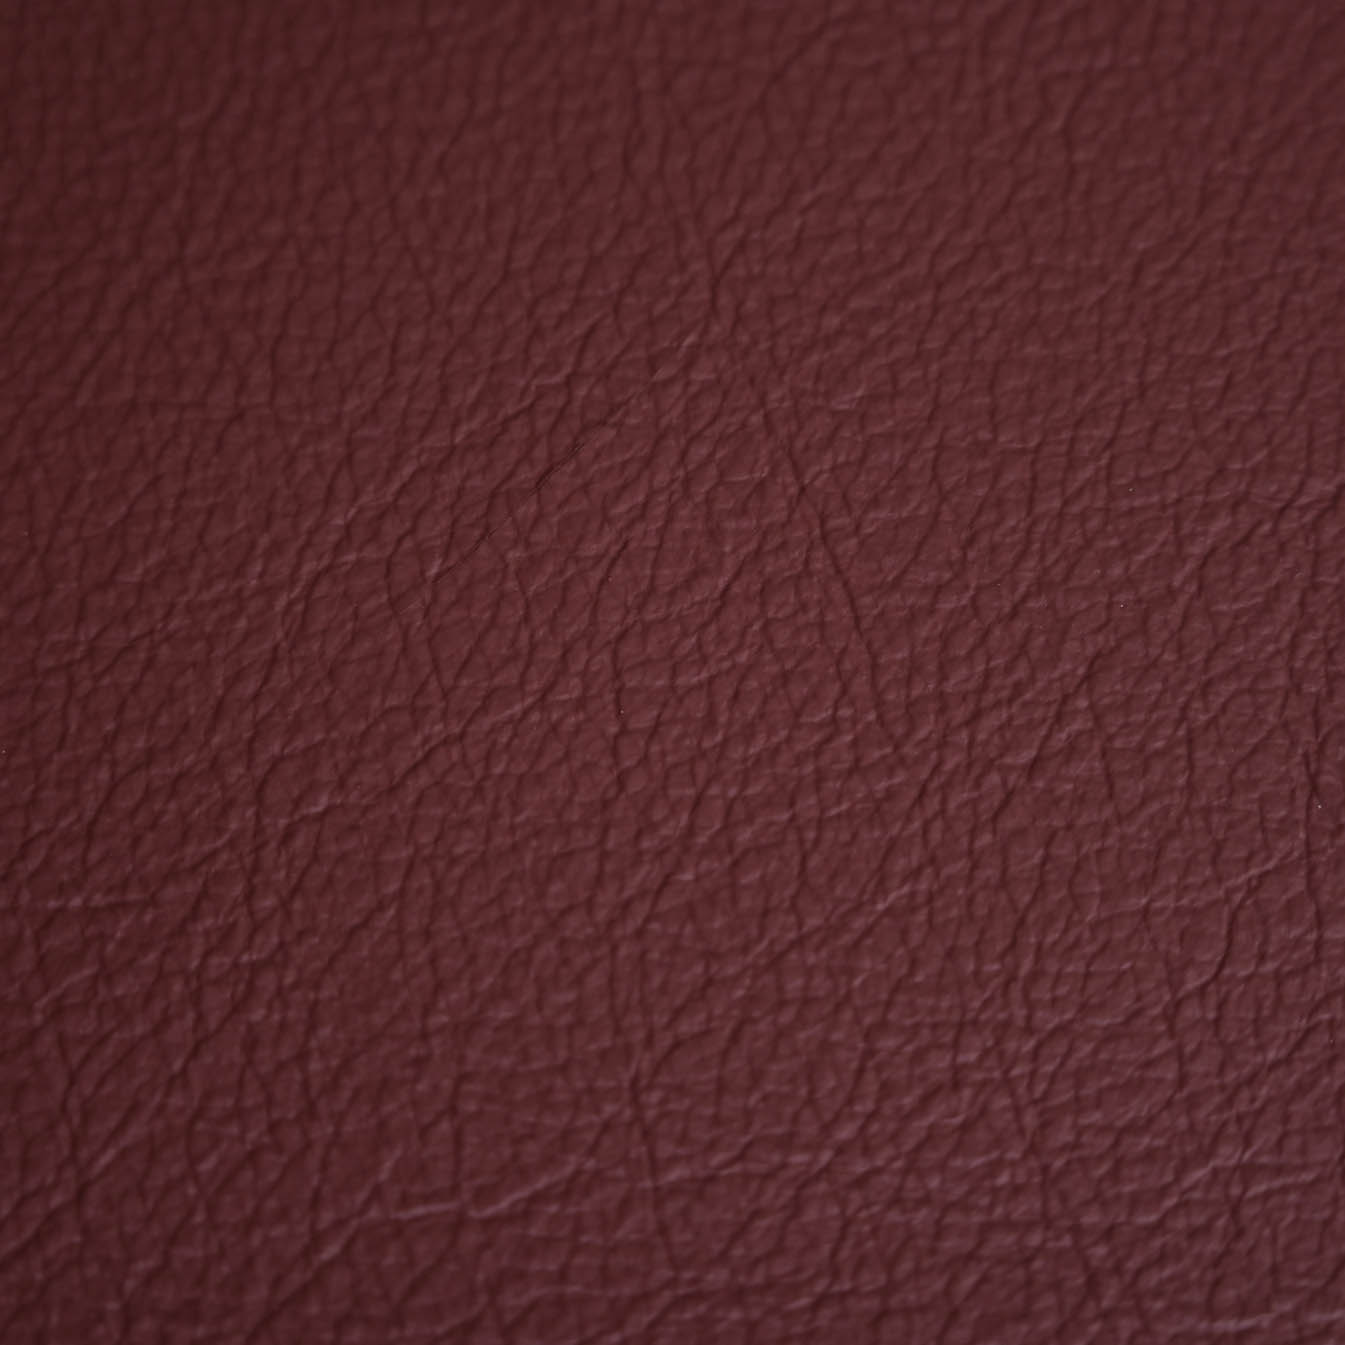 nappa leather in cherry color